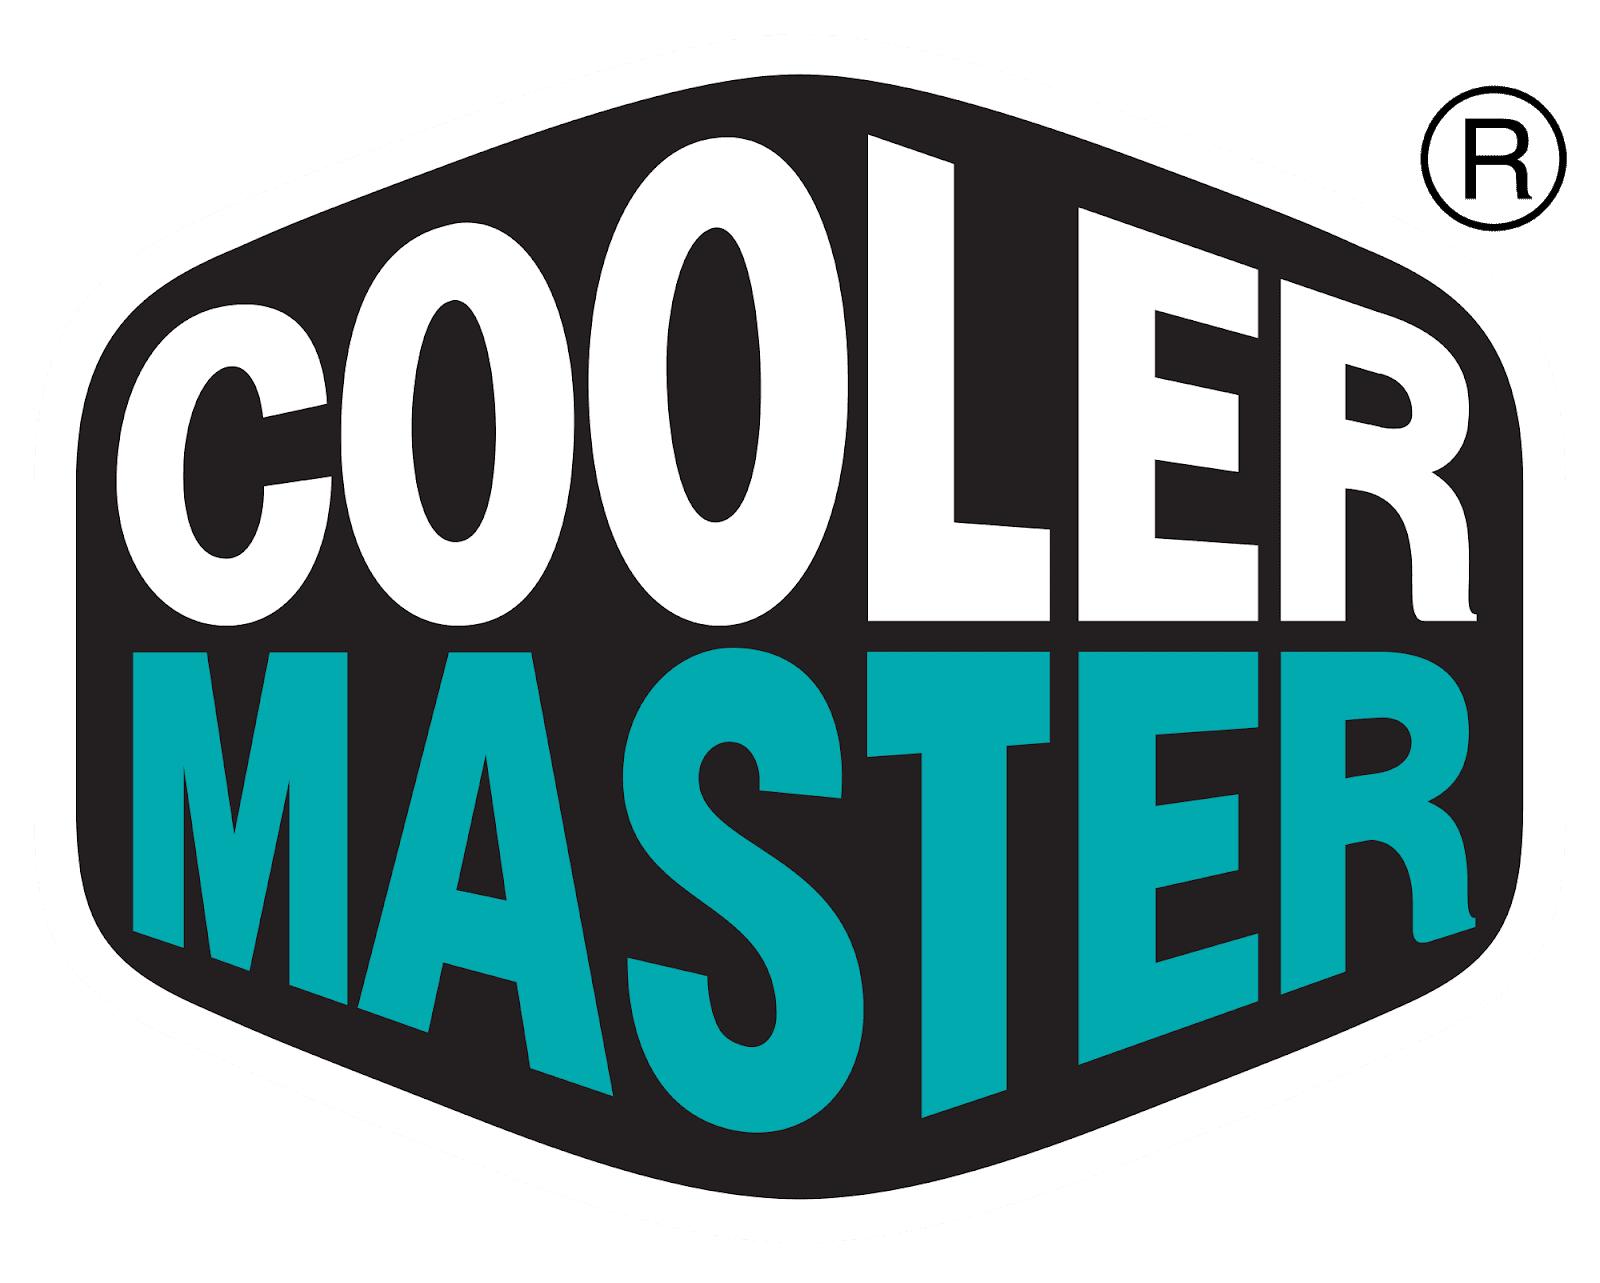 Cooler Master Announced The Official Air Cooler For The 2nd Gen Ryzen™ Threadripper™